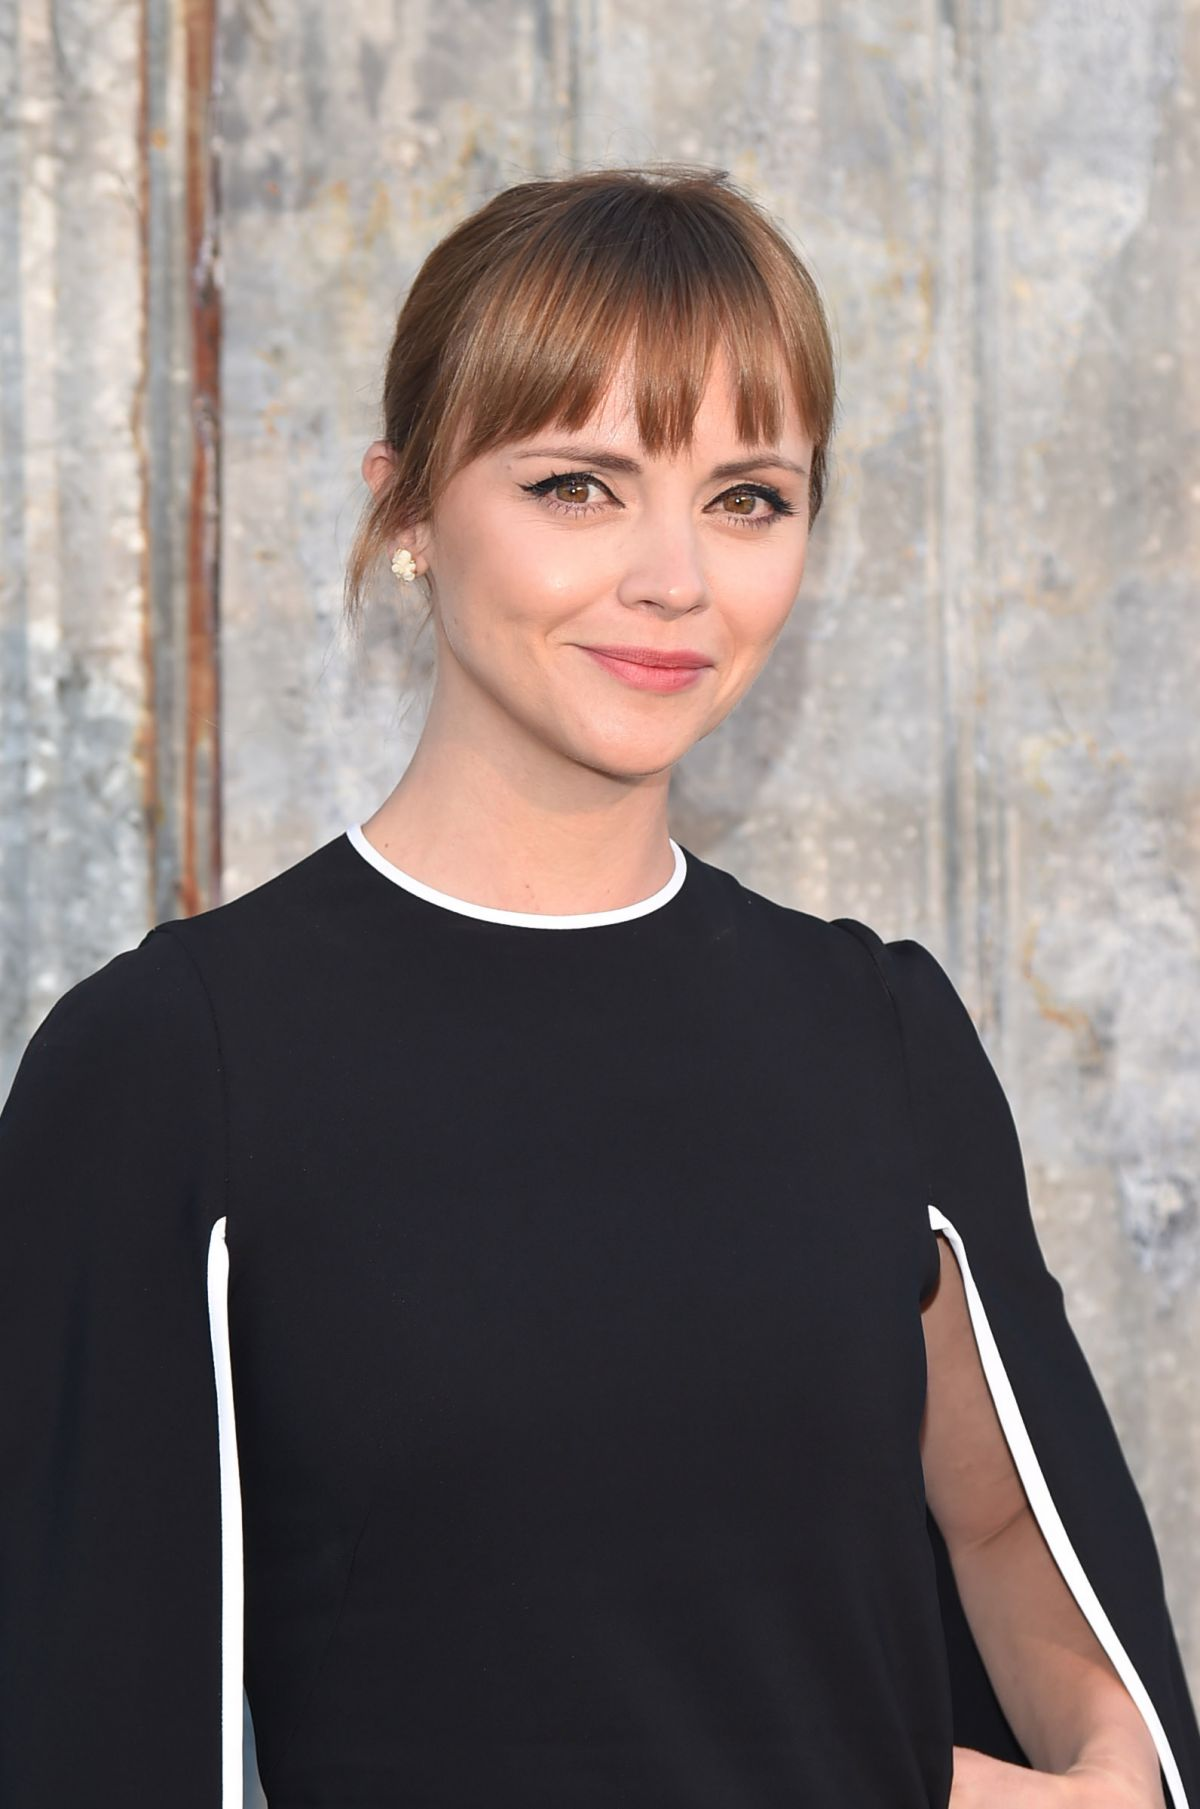 CHRISTINA RICCI at Givenchy Fashion Show in New York 09/11/2015 ...